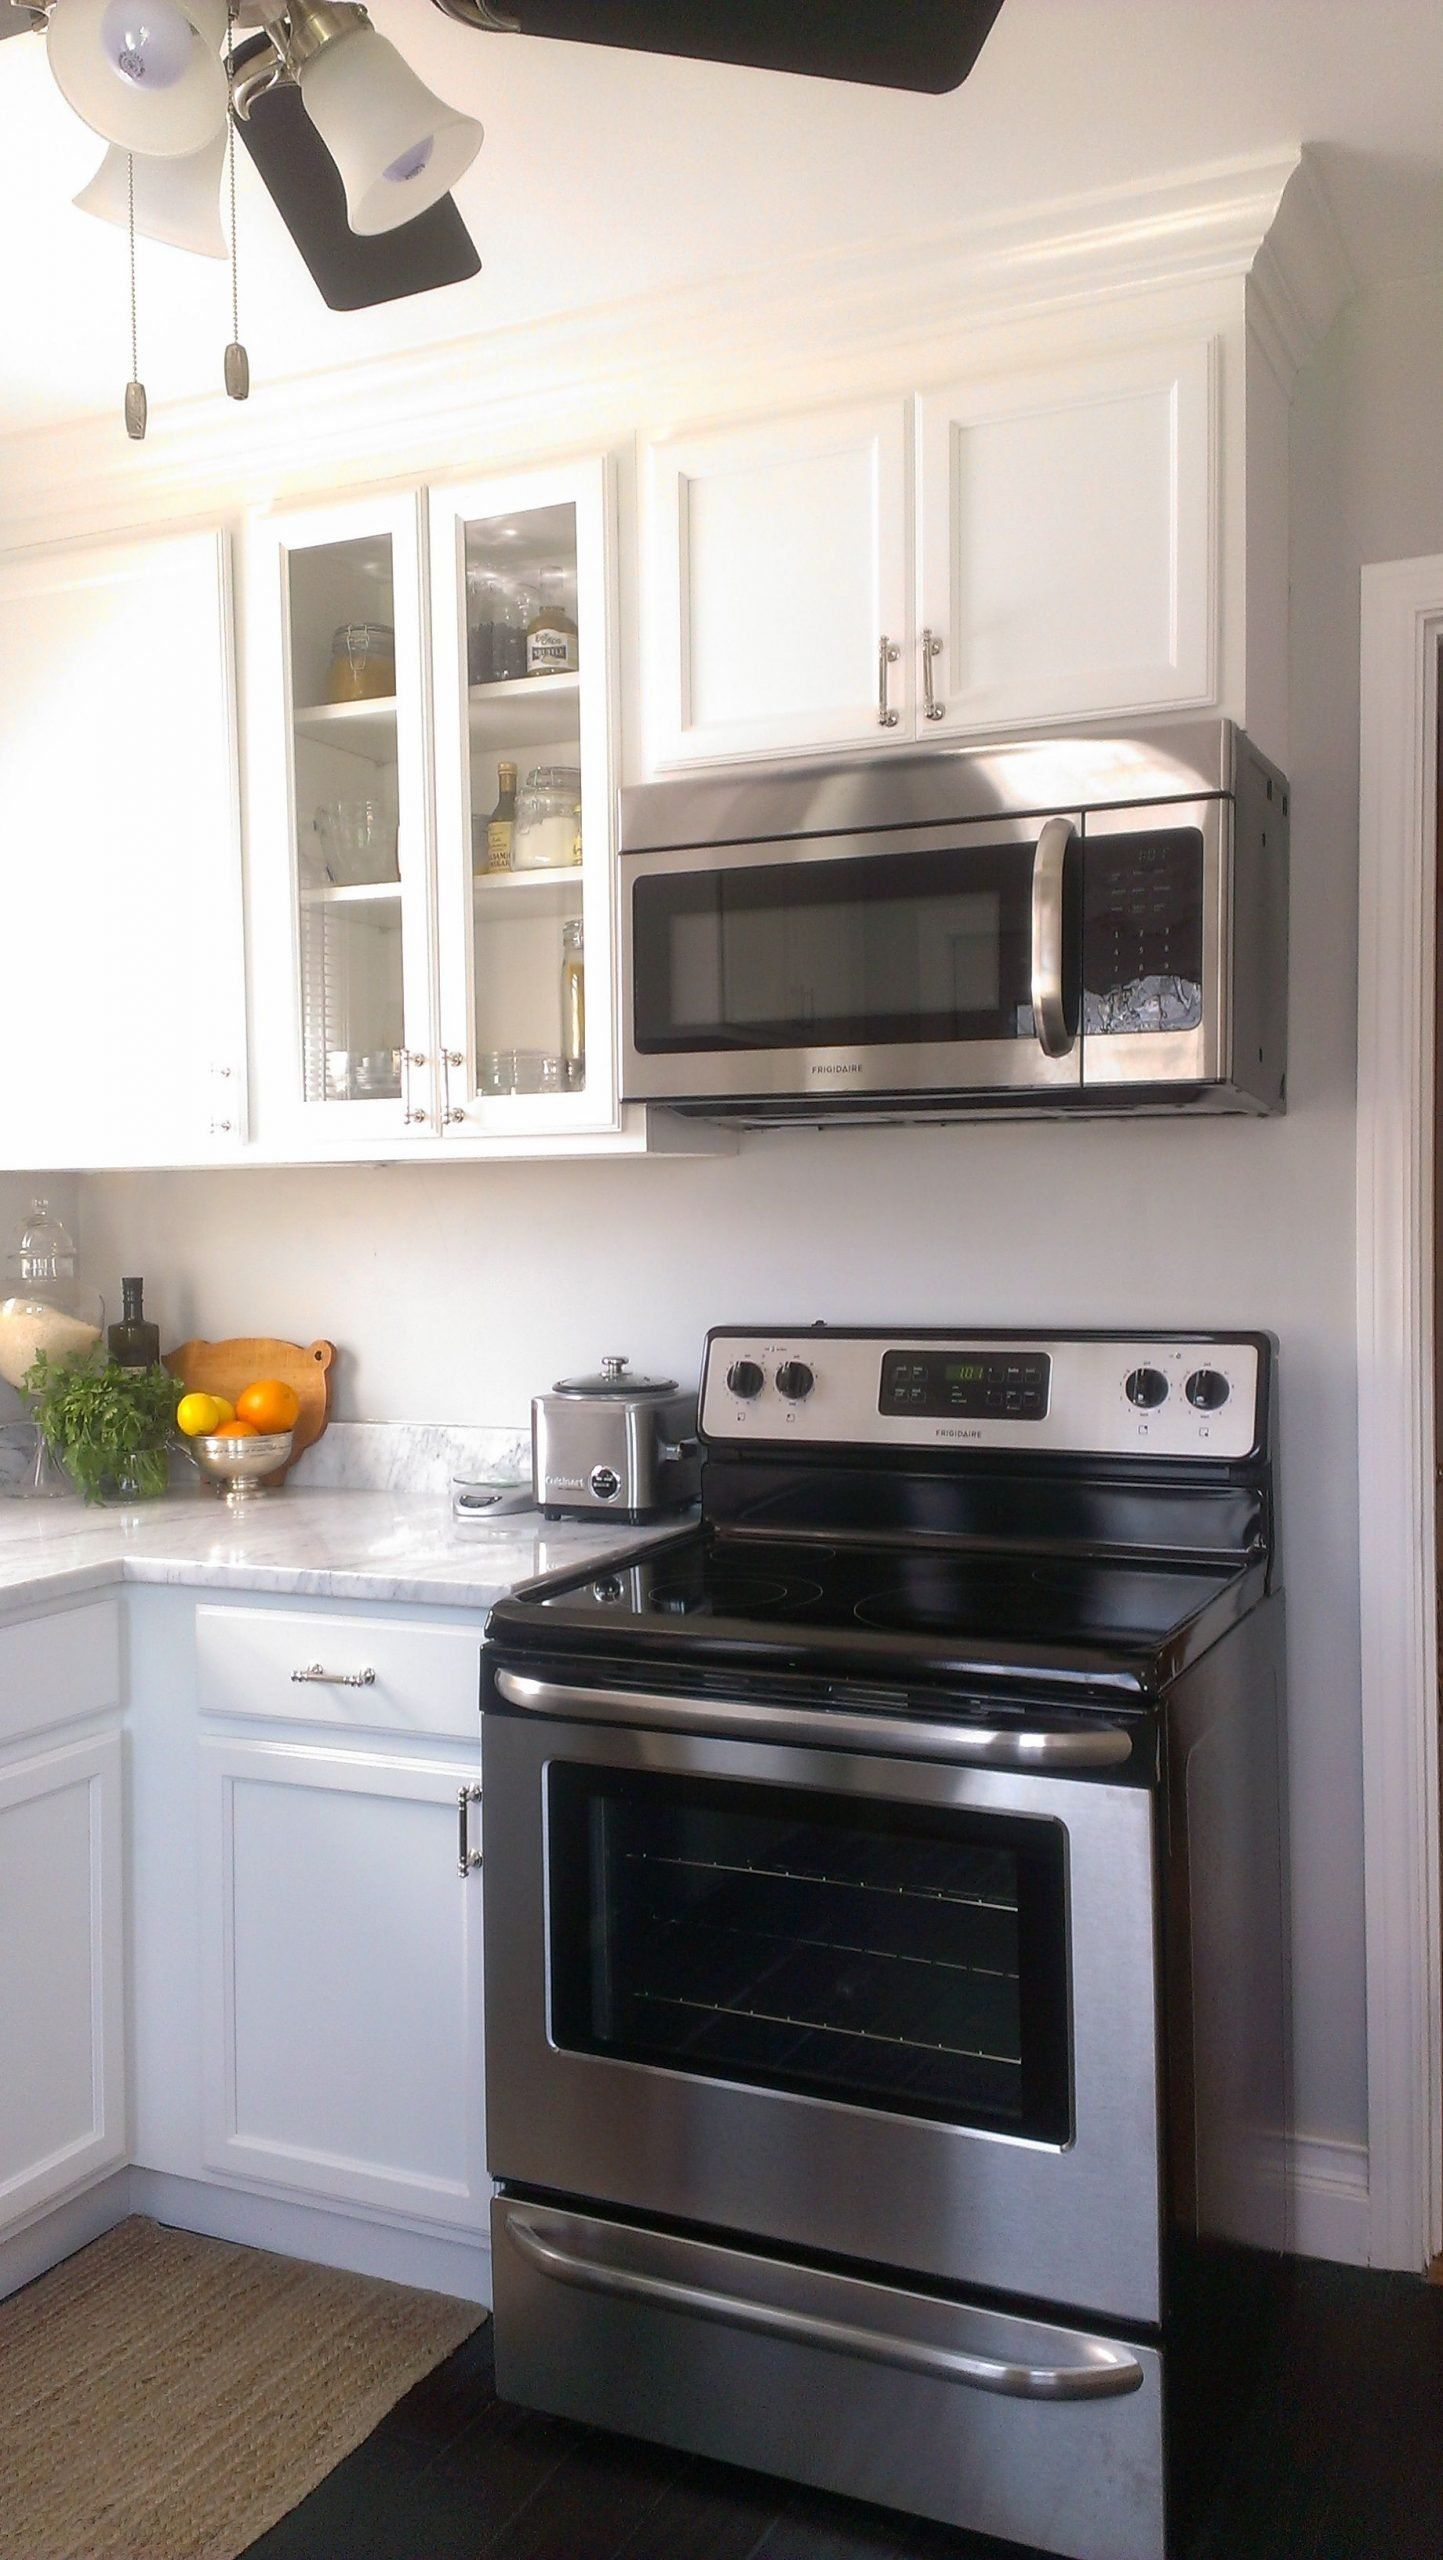 Small Kitchen White Cabinet Stainless Appliance Fresh Small Kitchen White Cabinets Carrara Marble Count In 2020 White Modern Kitchen Small White Kitchens Small Kitchen